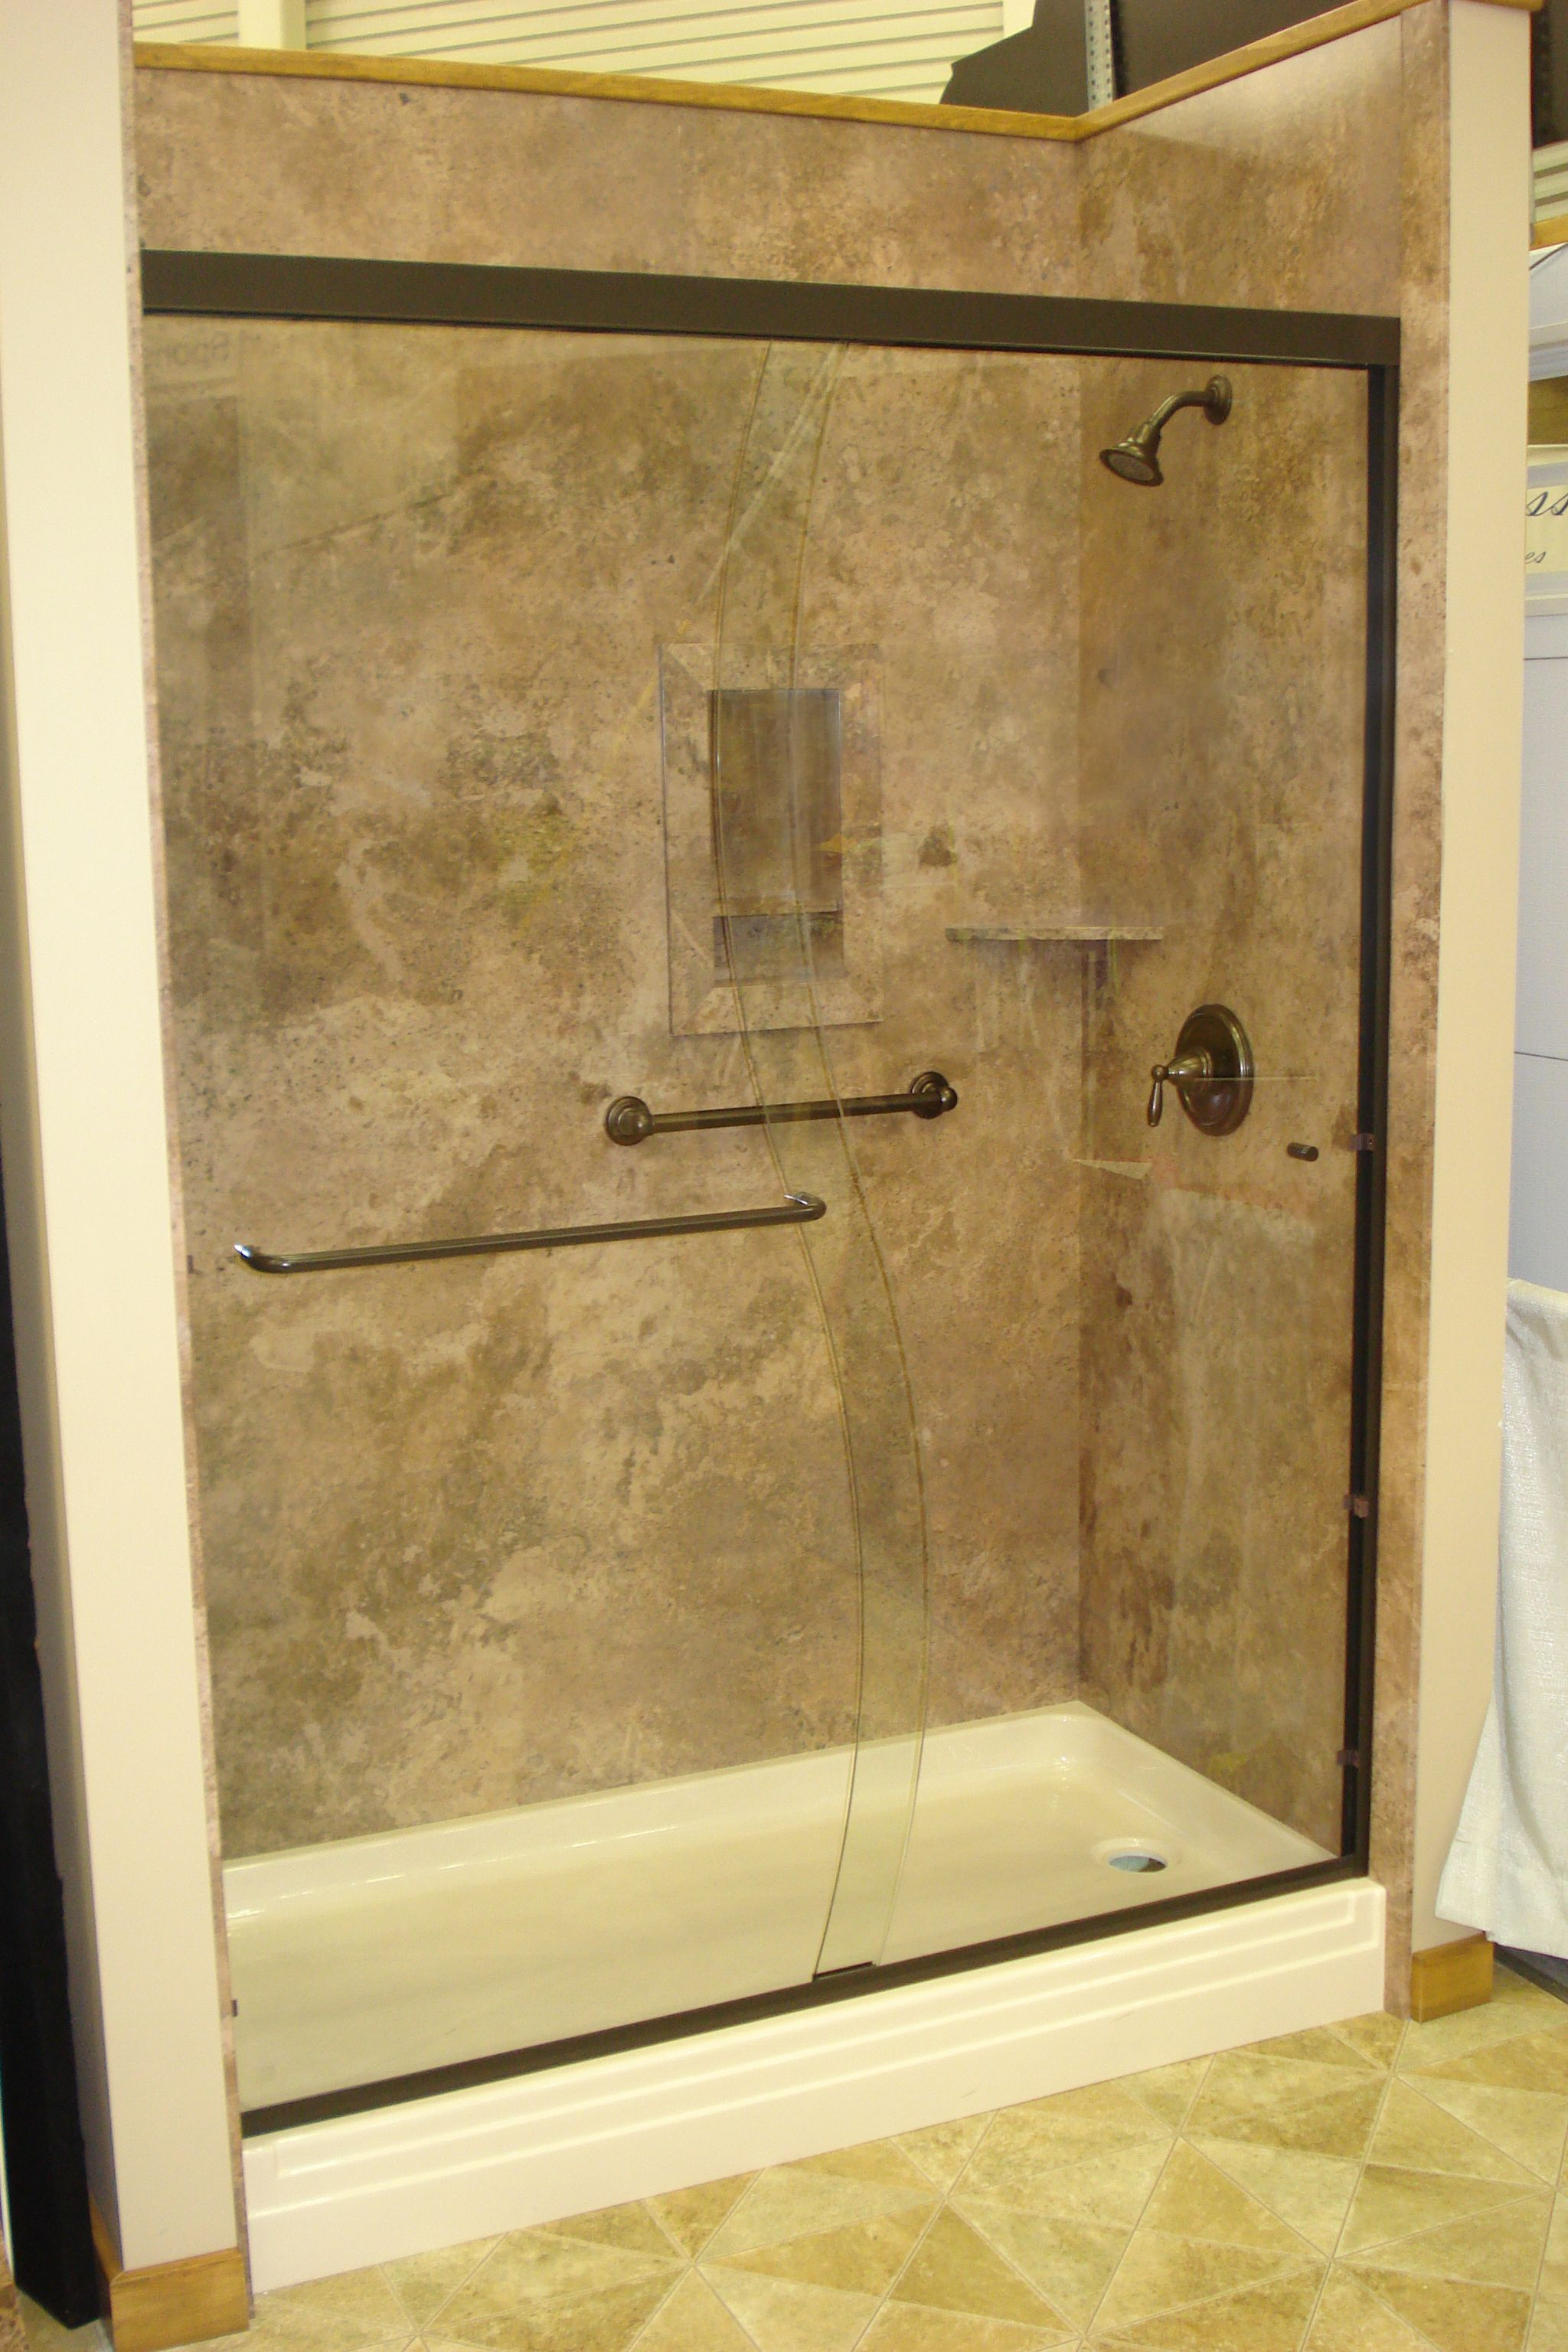 Mocha Travertine With Oil Rubbed Bronze Shower Door Oasis Shower - Acrylic bathroom wall panels for bathroom decor ideas